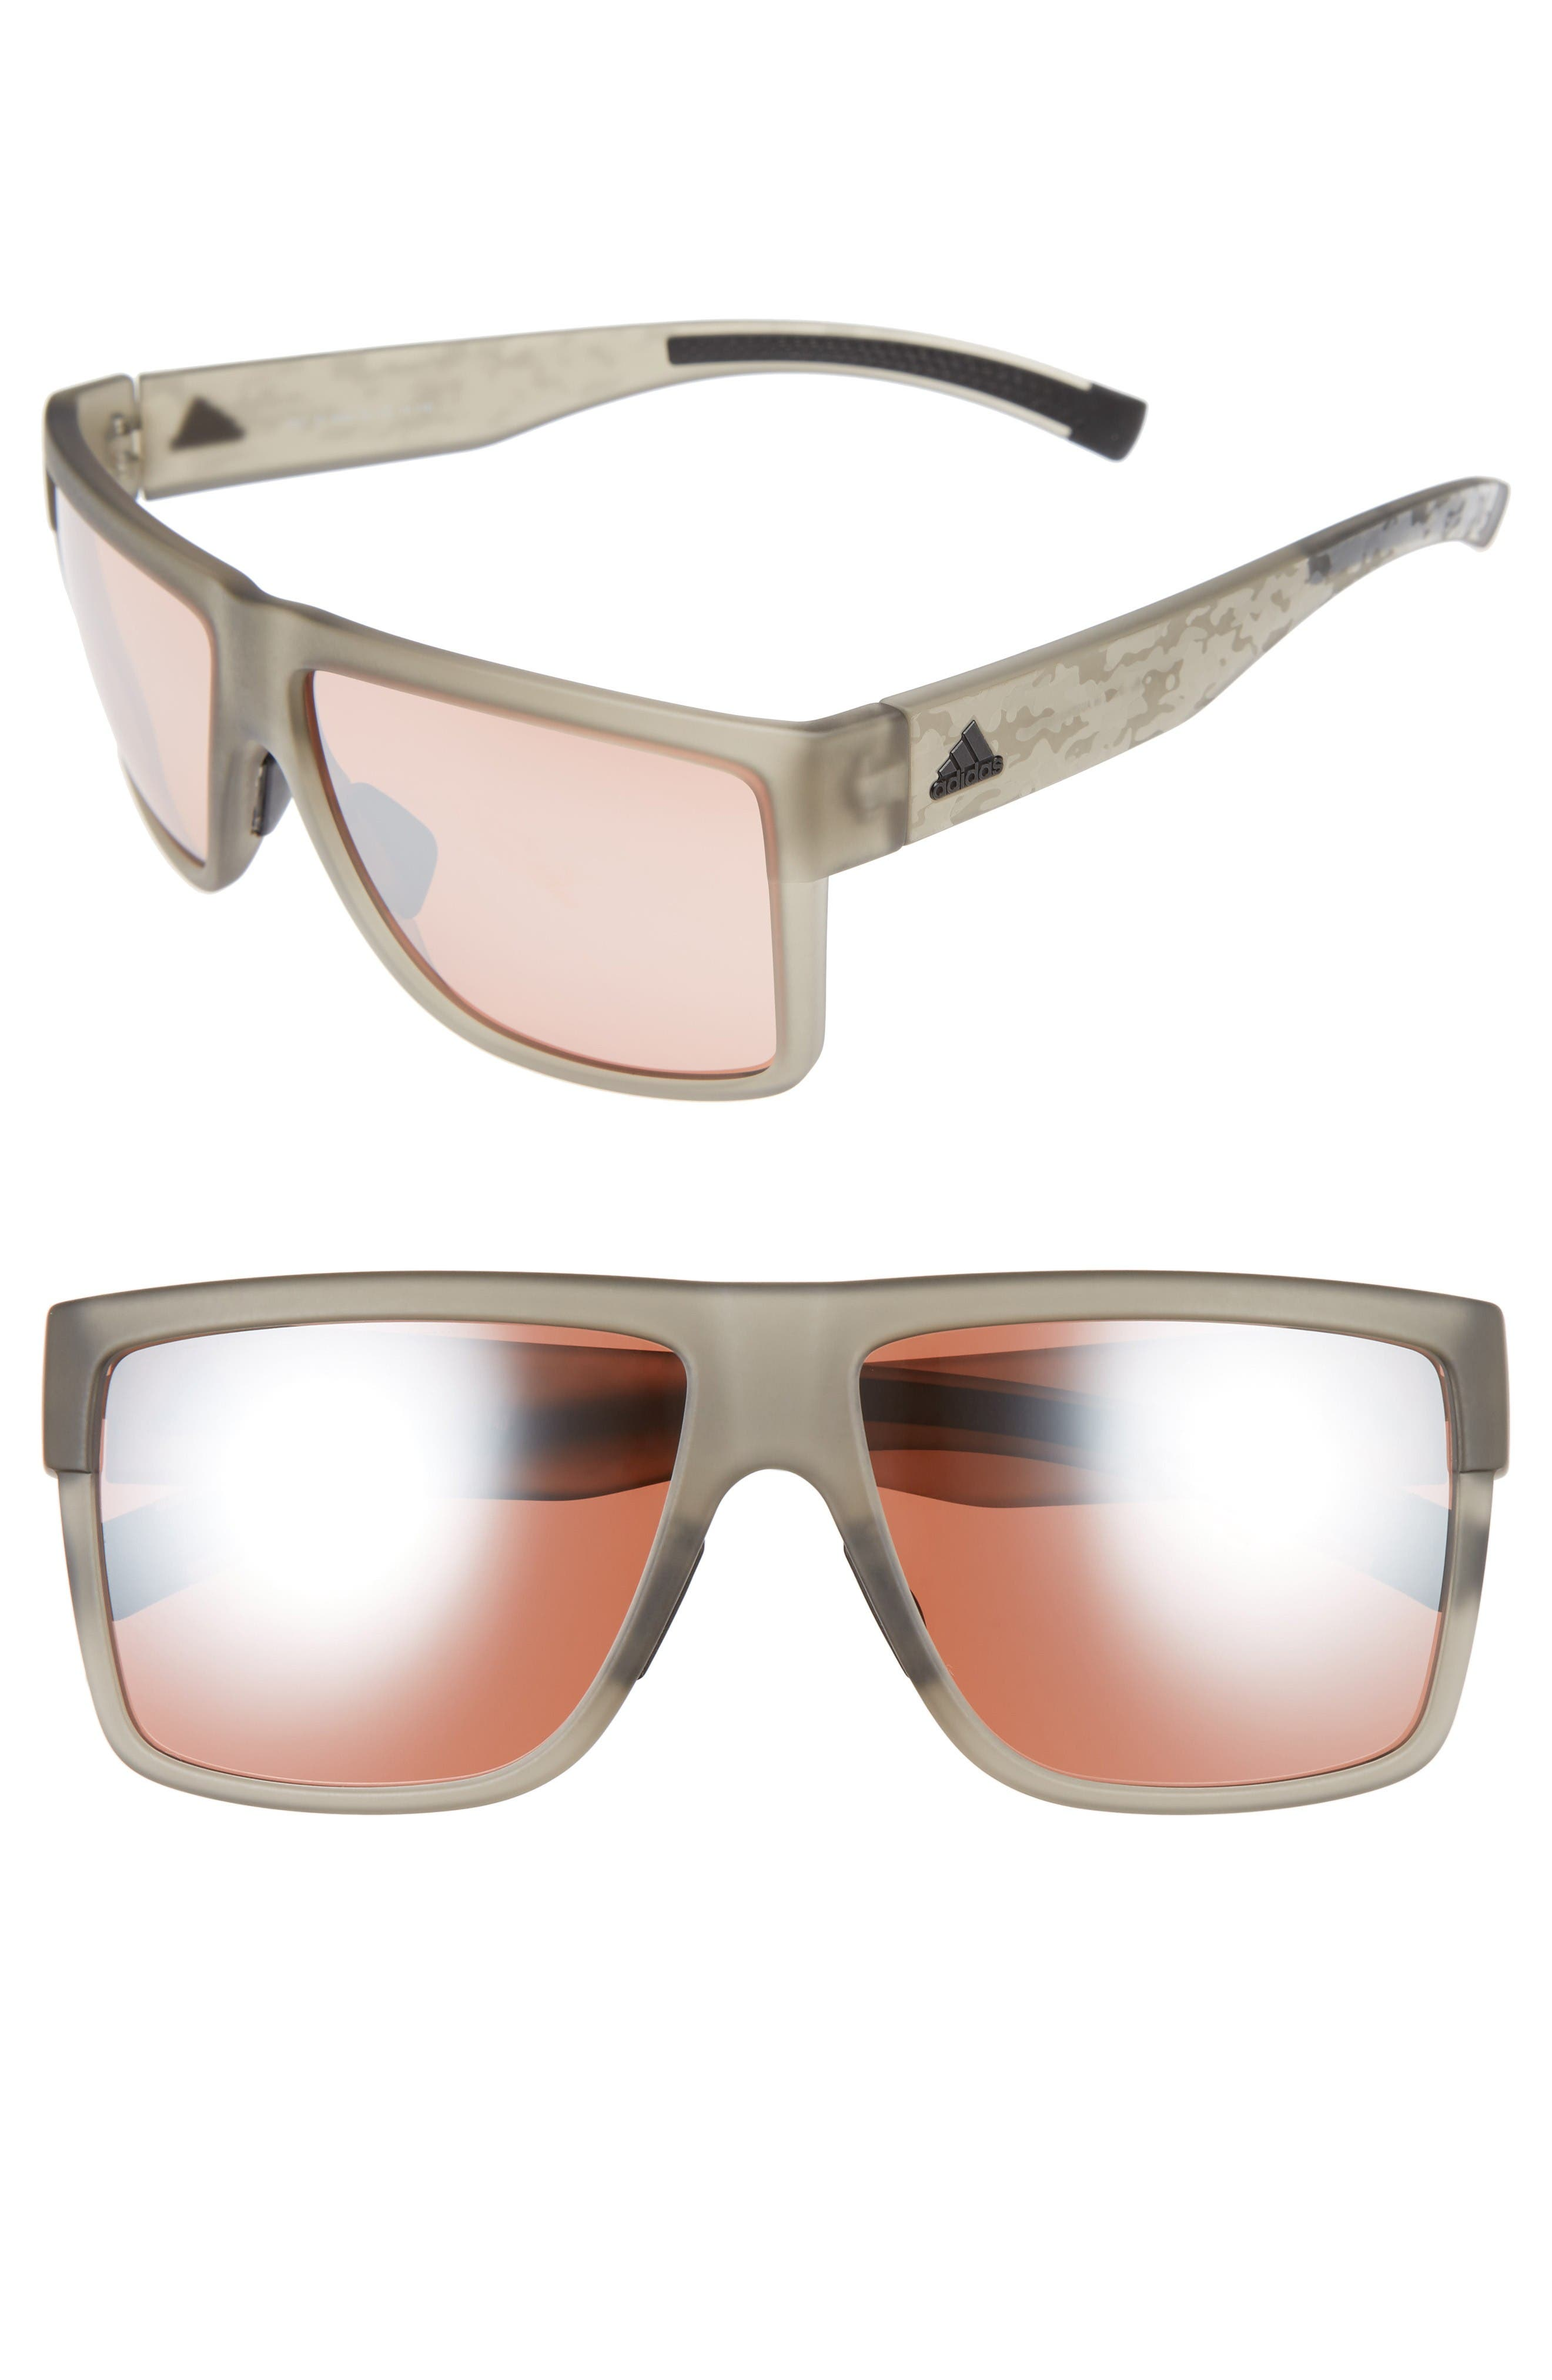 3Matic 60mm Sunglasses,                         Main,                         color, Grey Camo Print/ Taupe